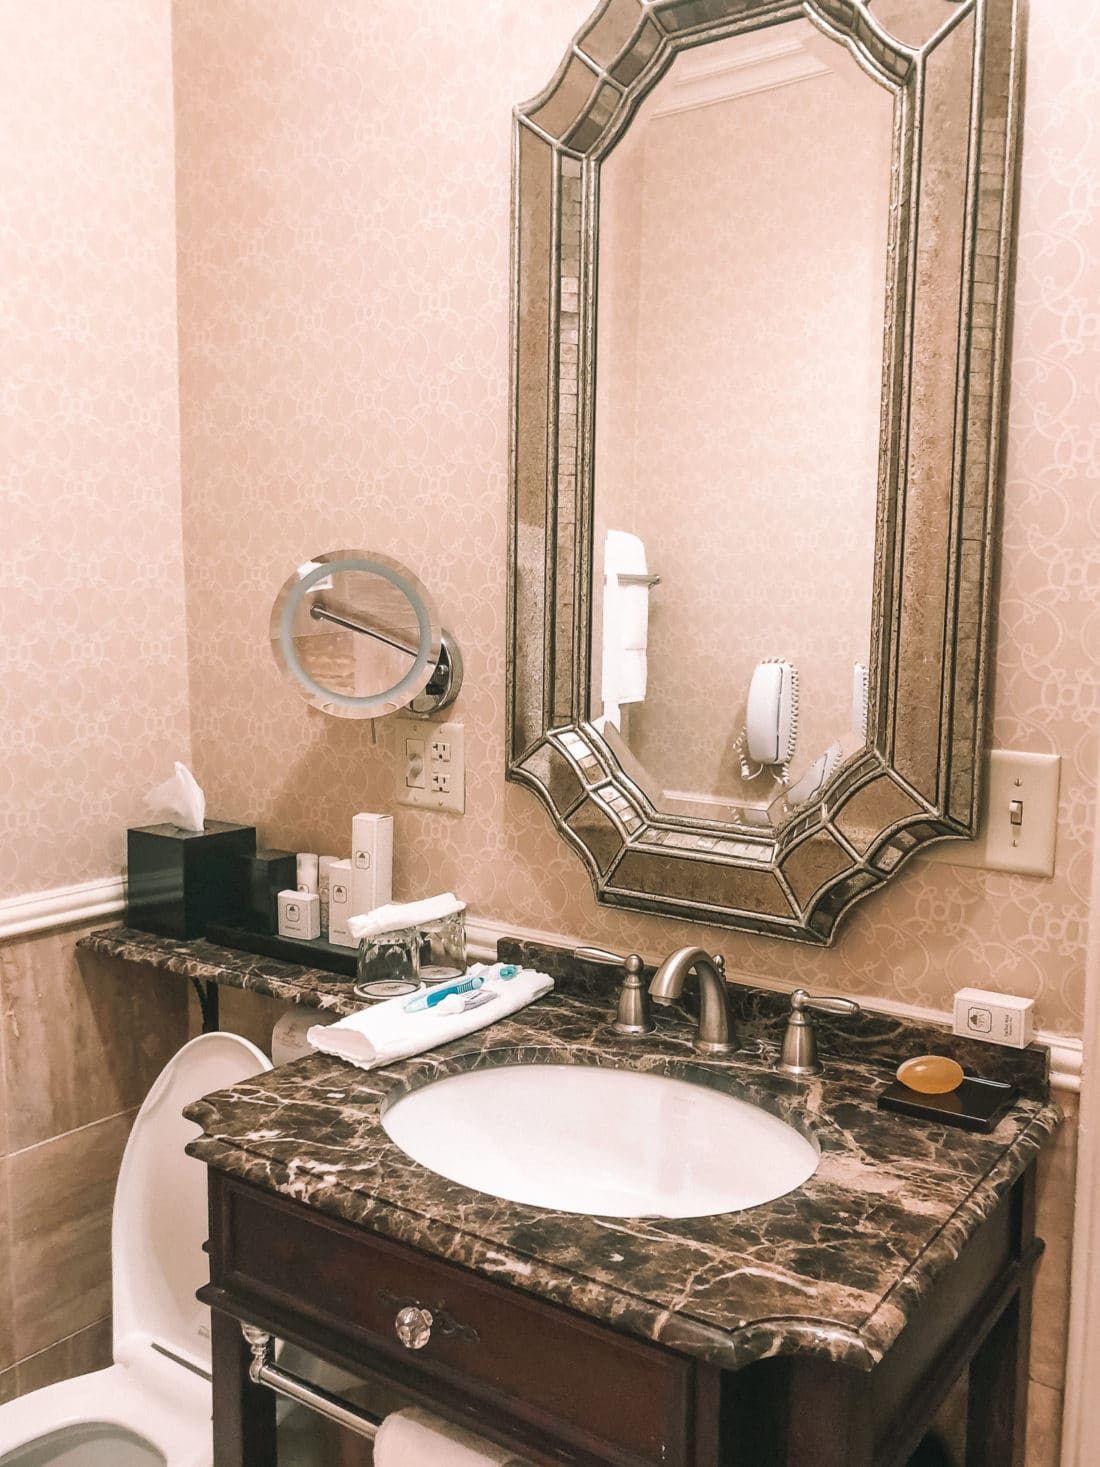 Hershey Hotel Bathroom. The Hotel Hershey is a luxury hotel located in Hershey, PA. The Double Queen room offers a luxry stay for up to 4 people.